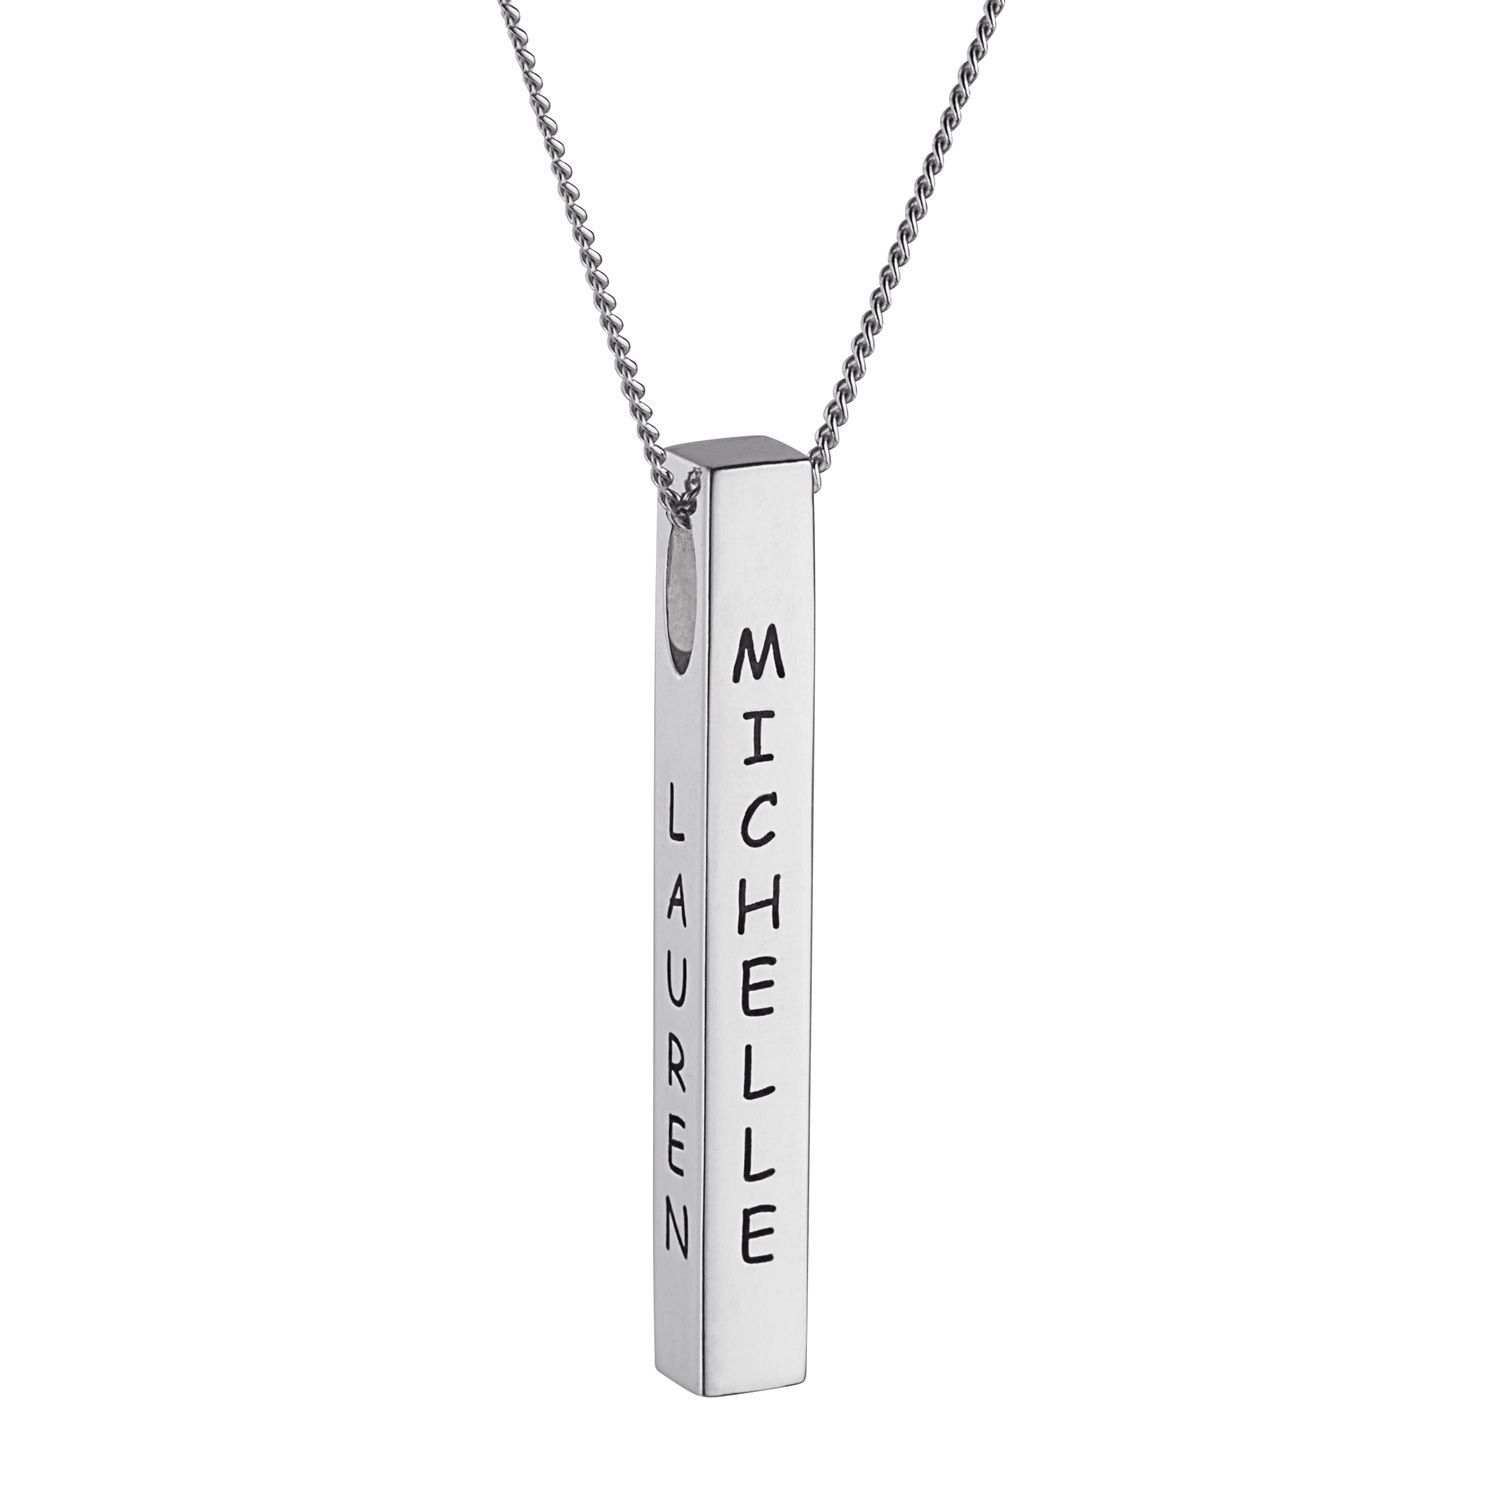 Celebrate family with this sided family name pendant